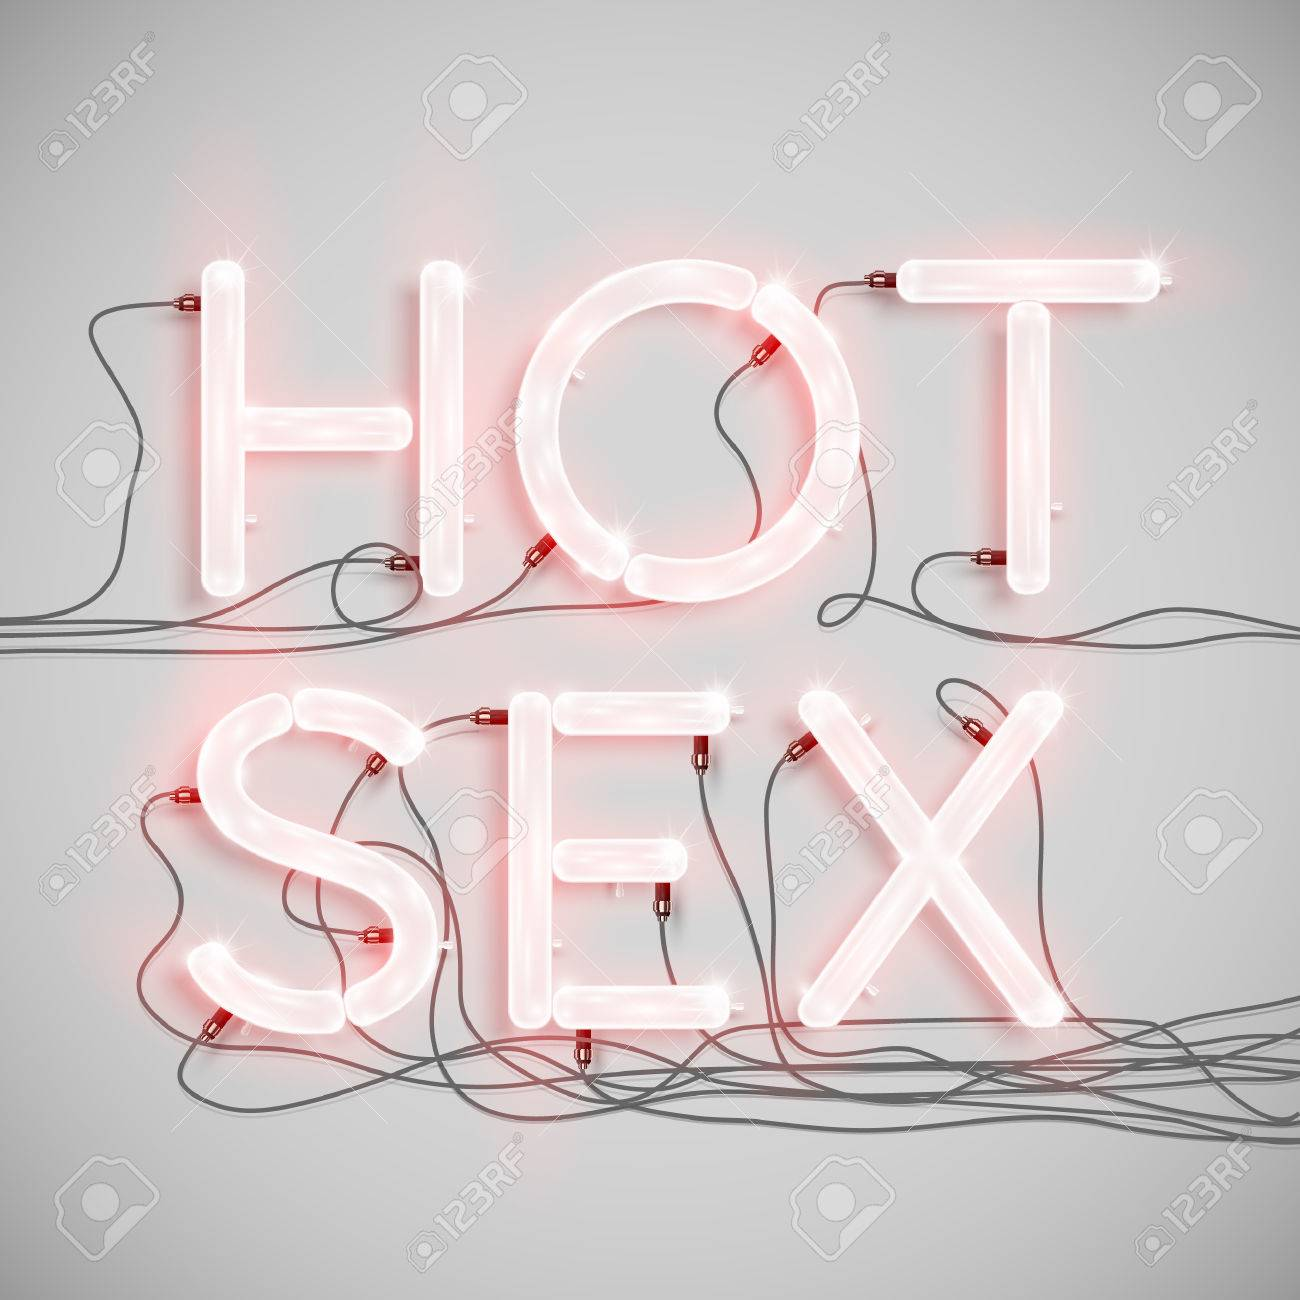 Hot hot hot sex images